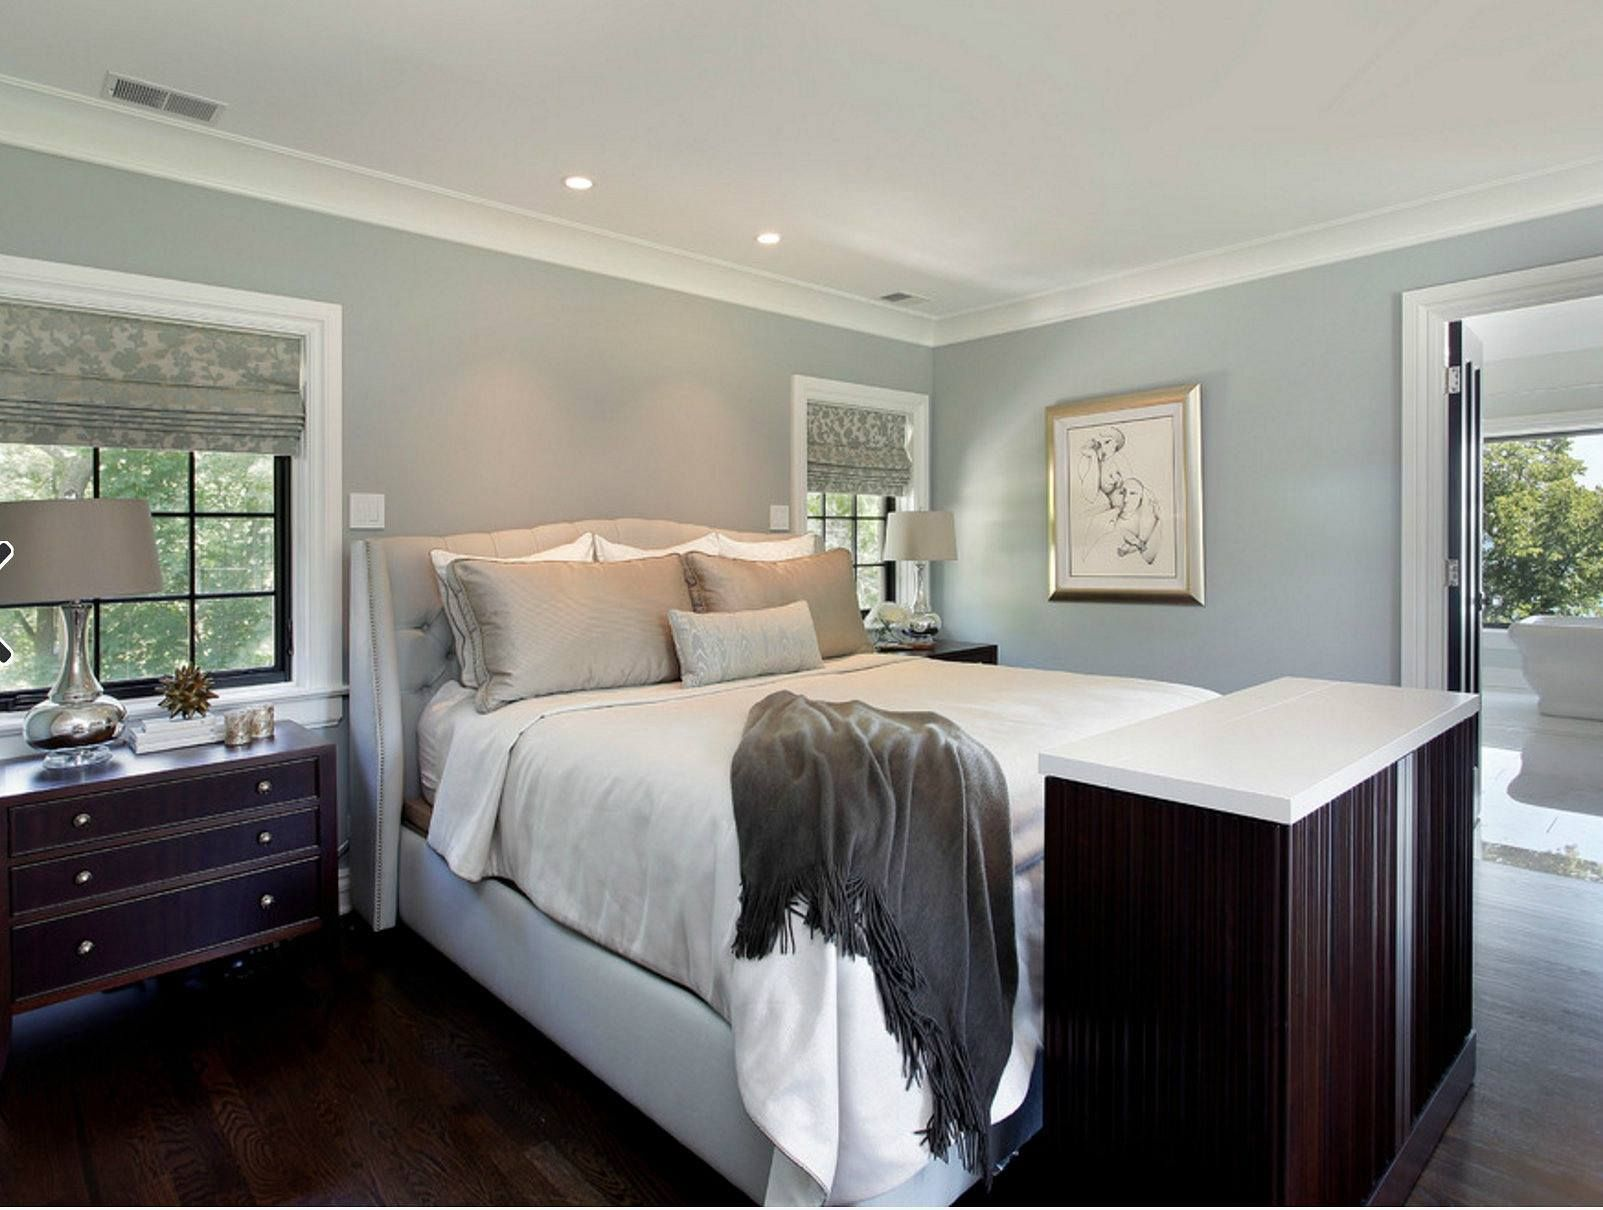 Benjamin moore beach glass has become one of the - Interior paint colors for bedroom ...